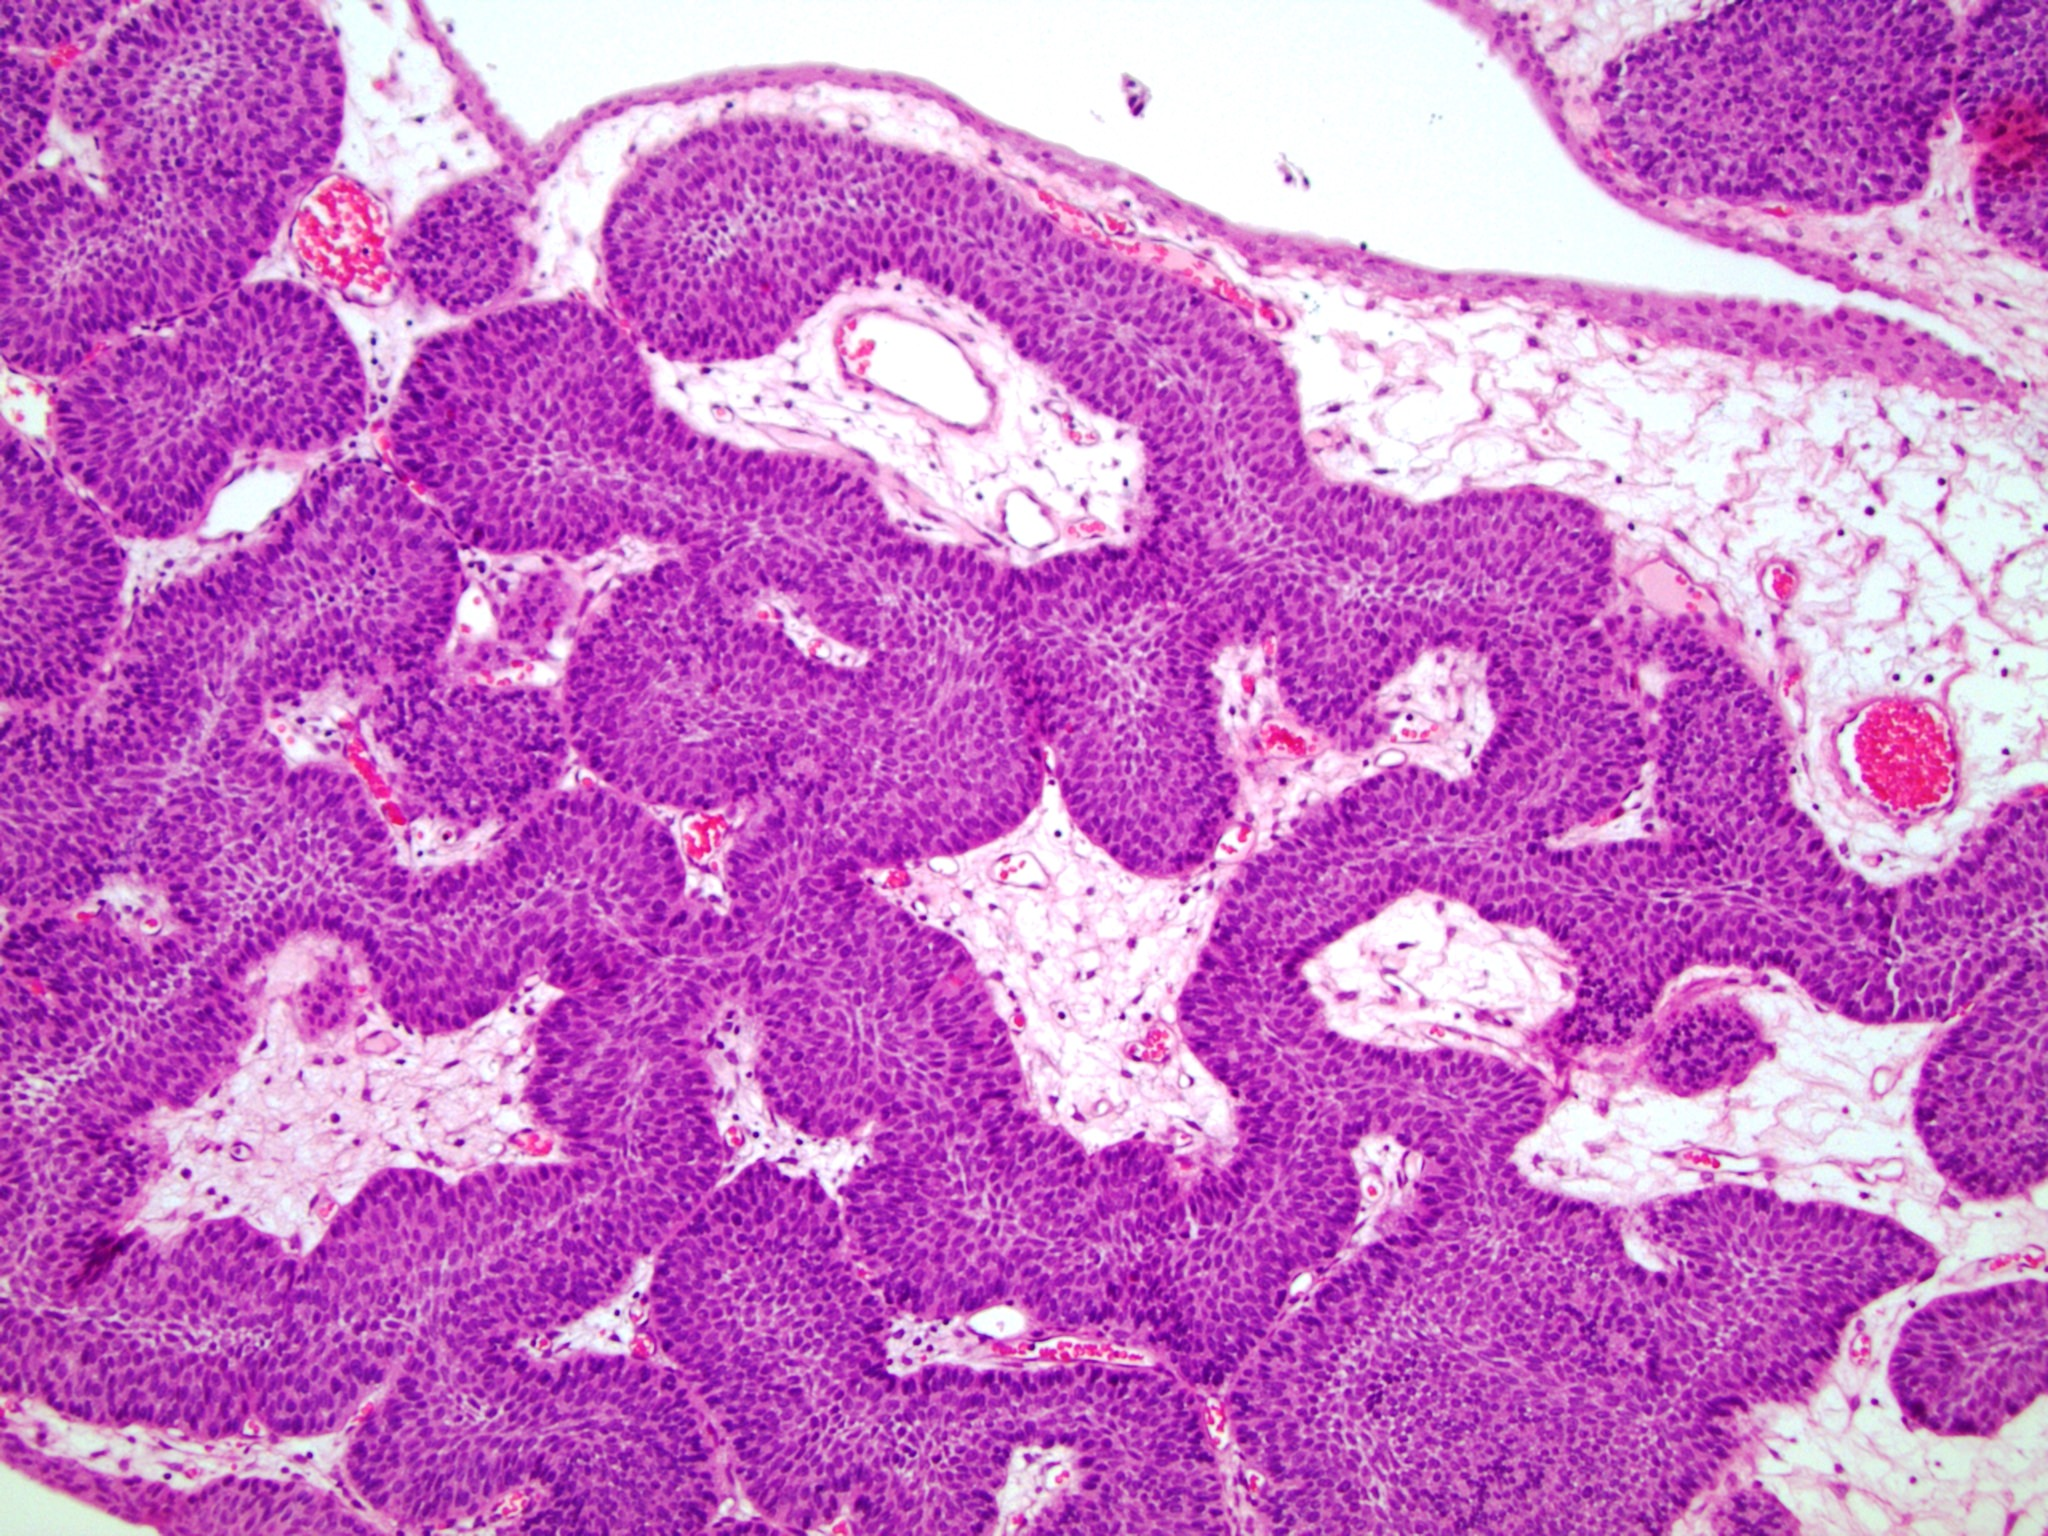 Bladder papilloma pathology outlines, - Bladder papillomatosis